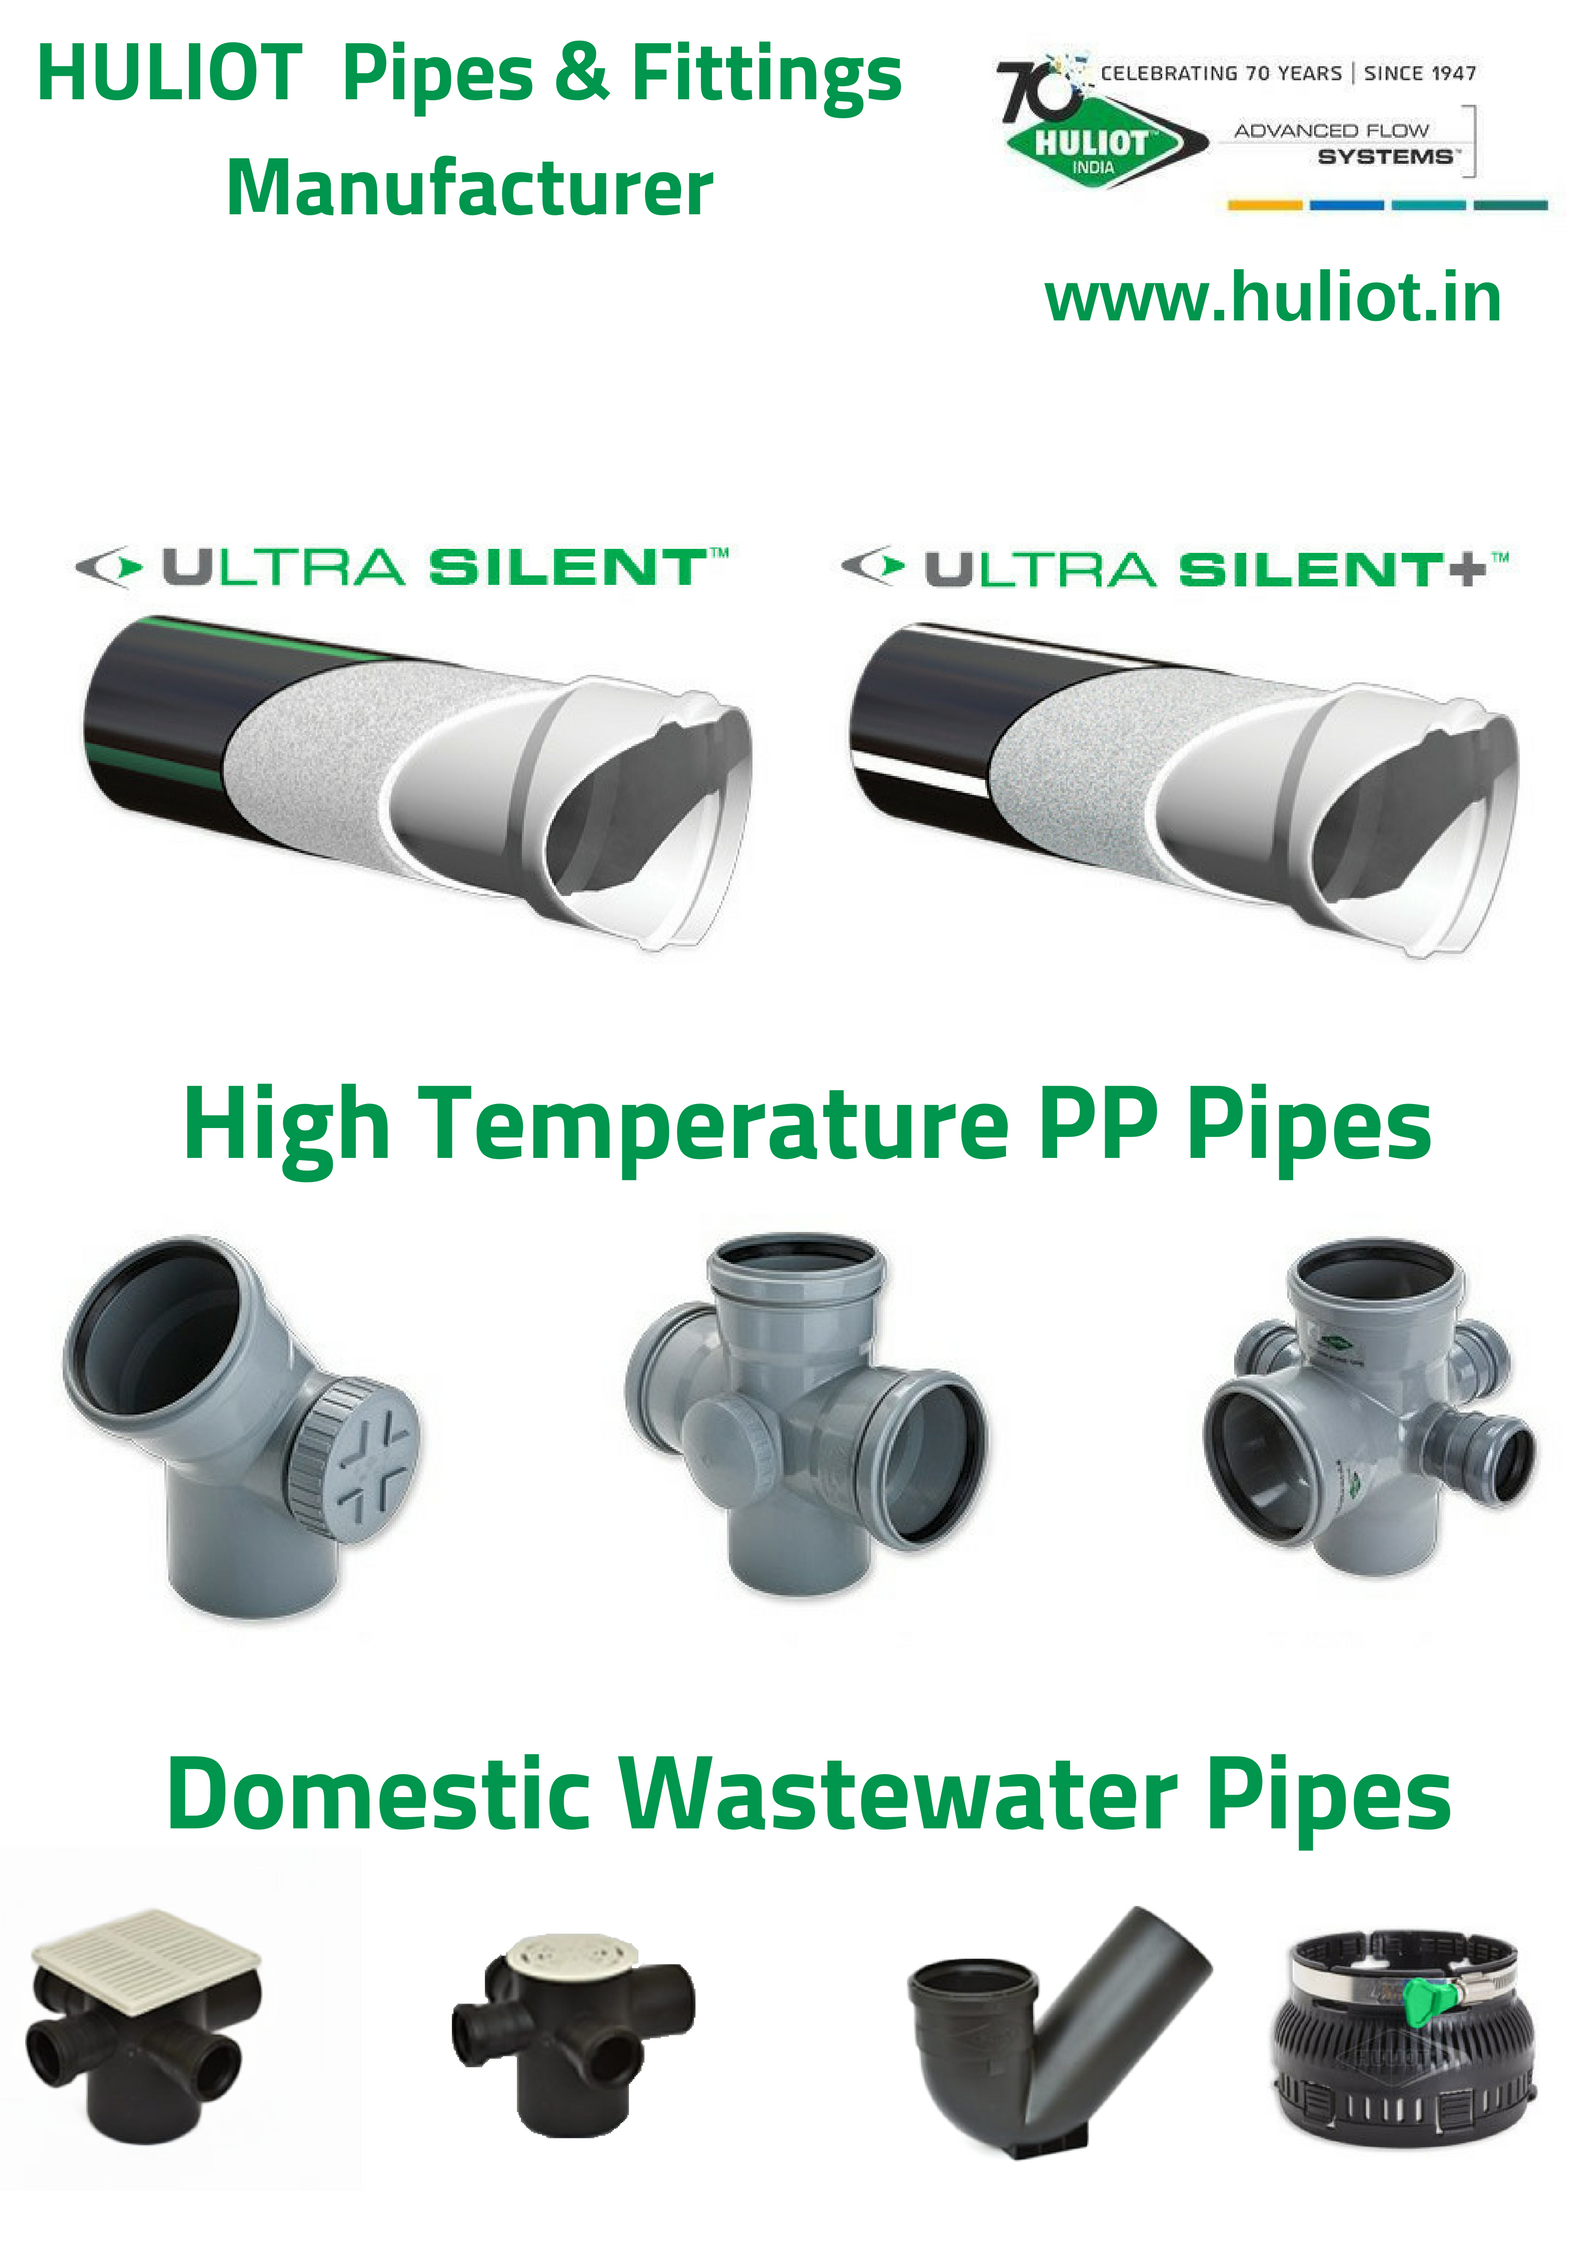 Pin On Huliot Pipes Fittings